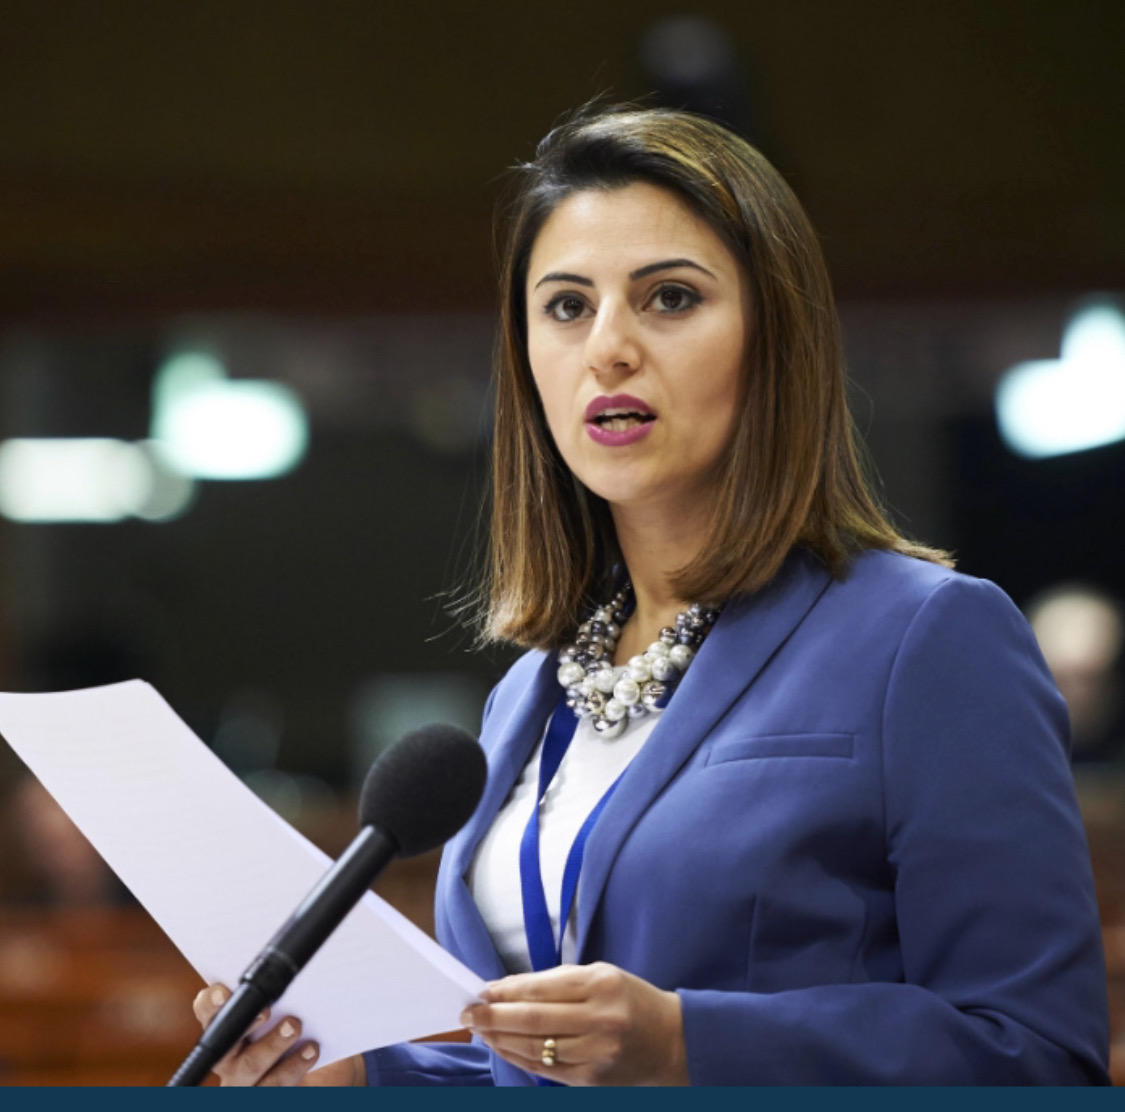 Azerbaijani MP elected as PACE Committee rapporteur